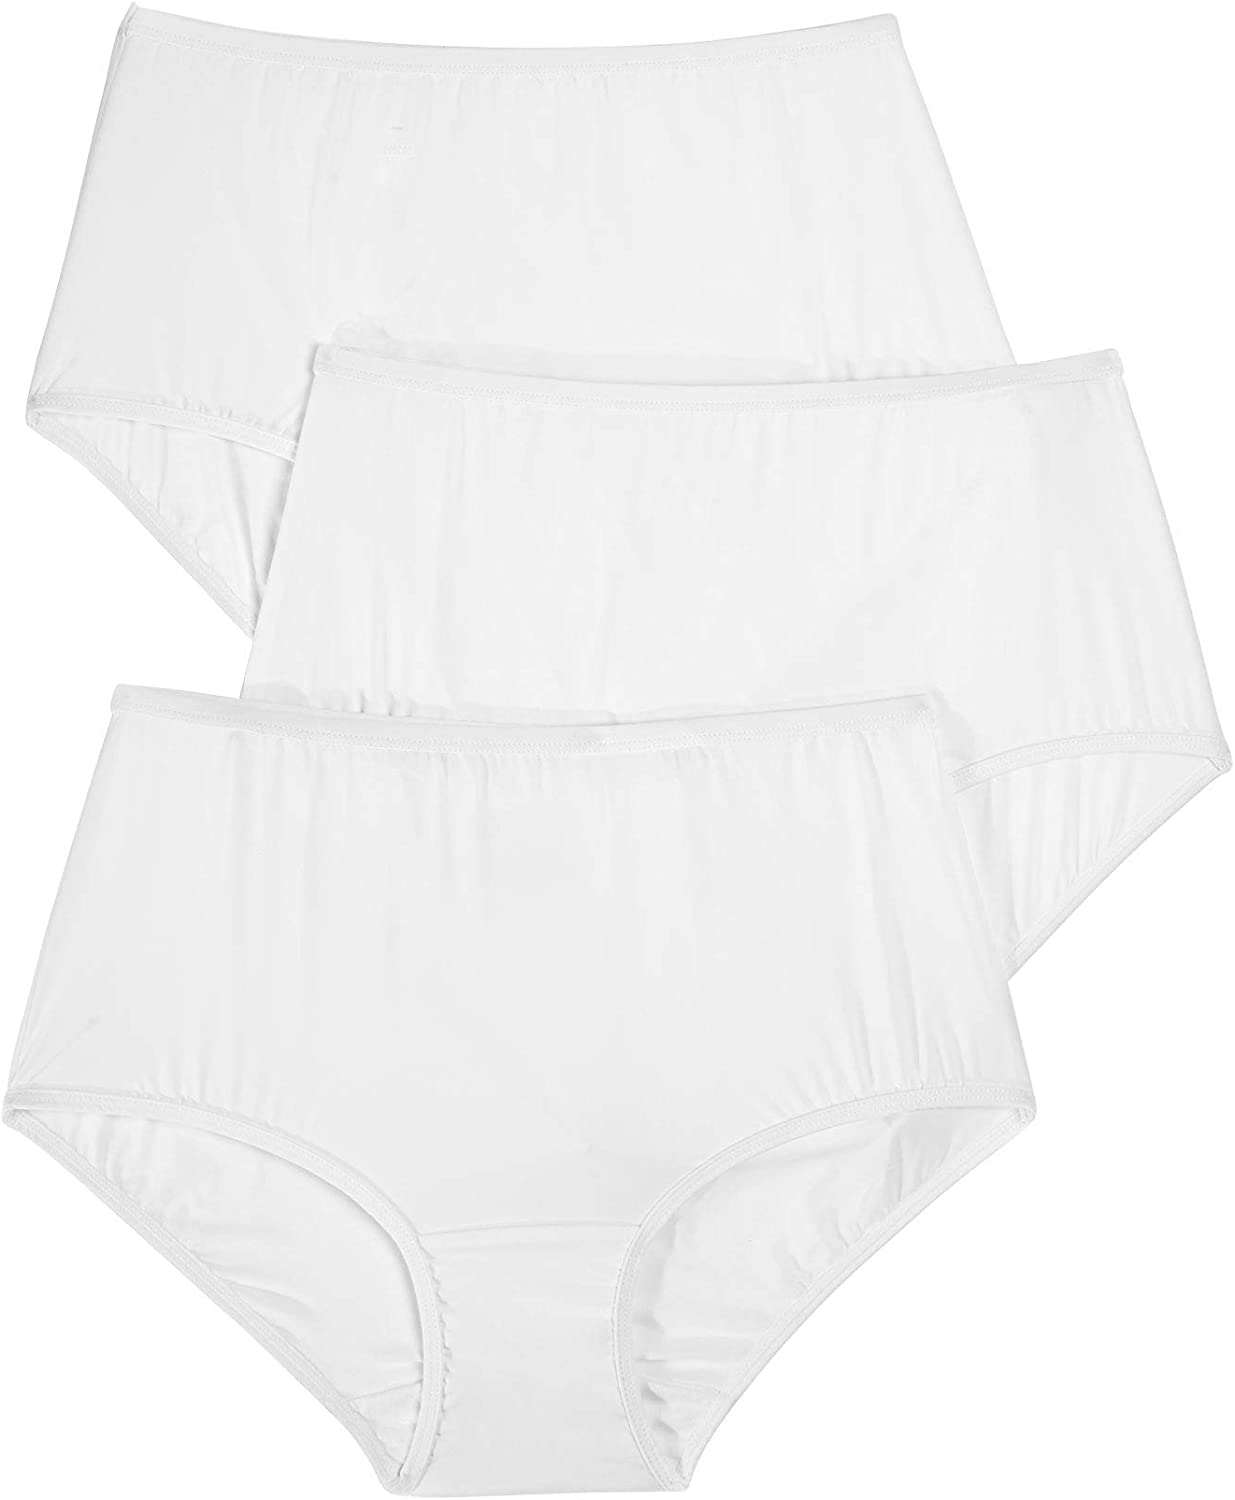 Comfort Choice Womens Plus Size 3-Pack Stretch Microfiber Full-Cut Brief